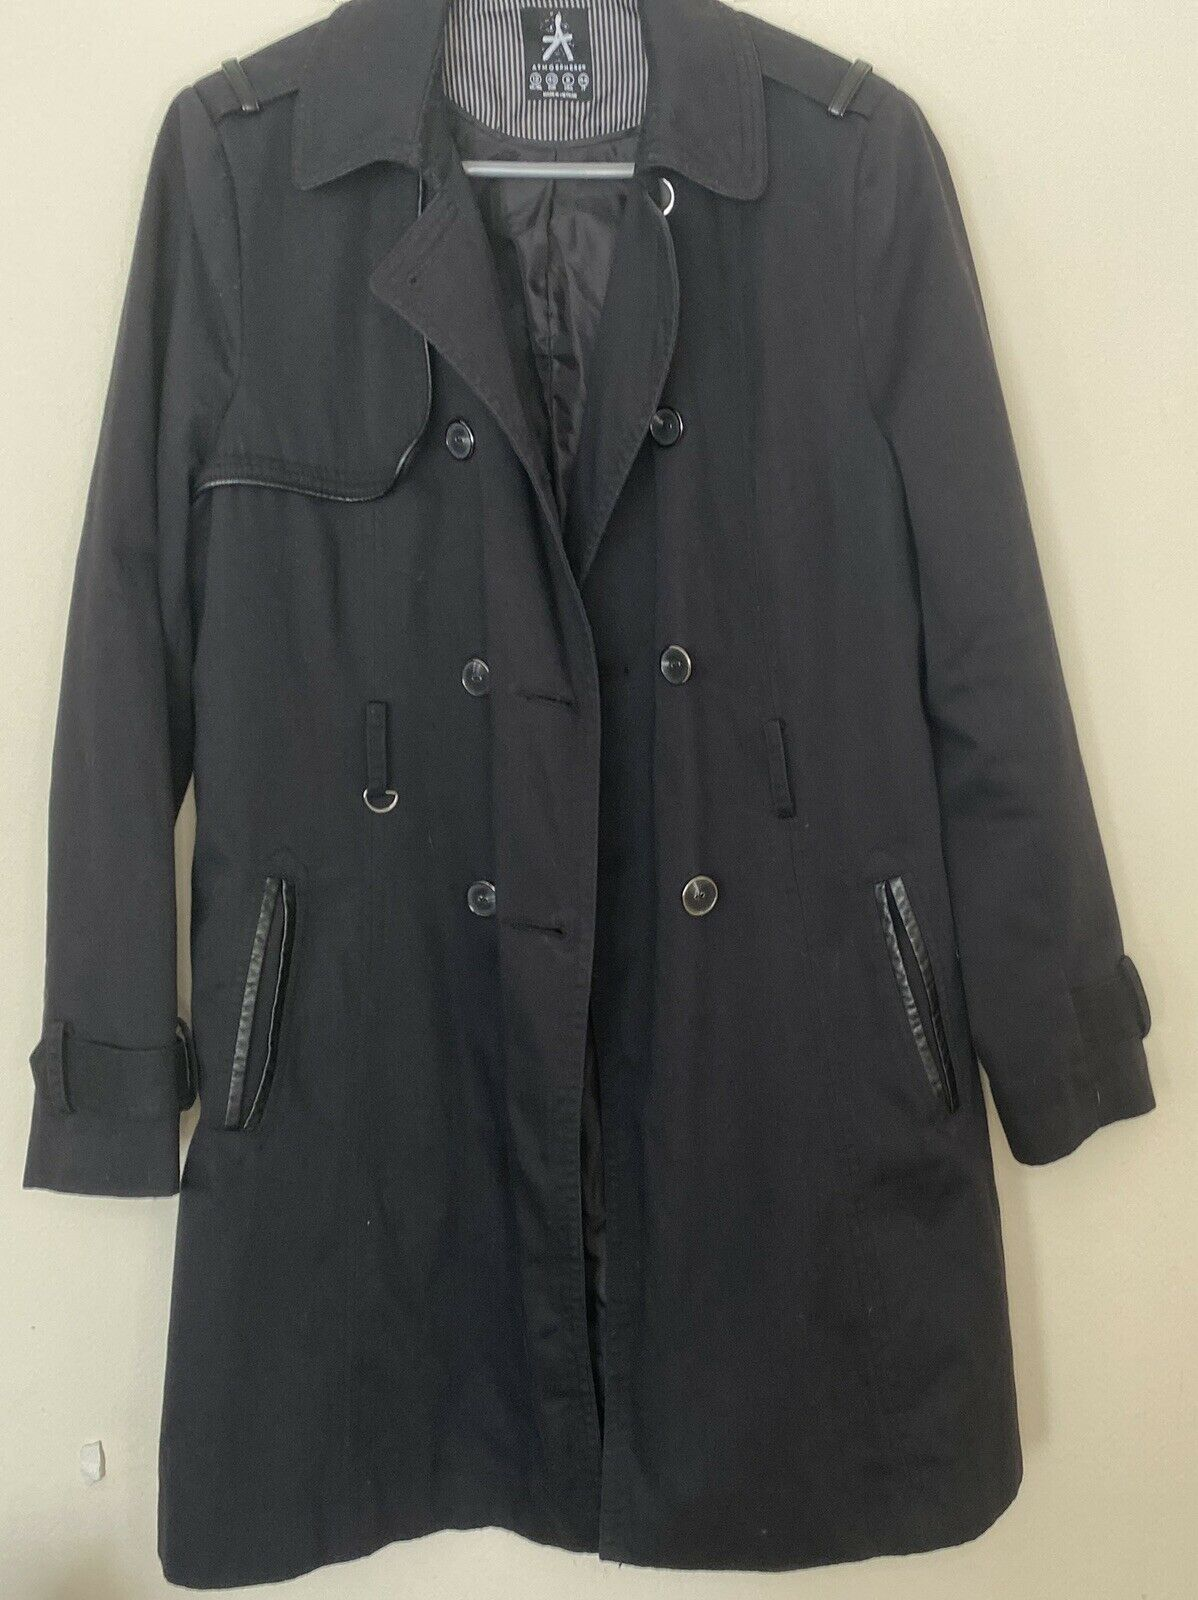 Atmosphere Womens Black Trench Coat Size 12